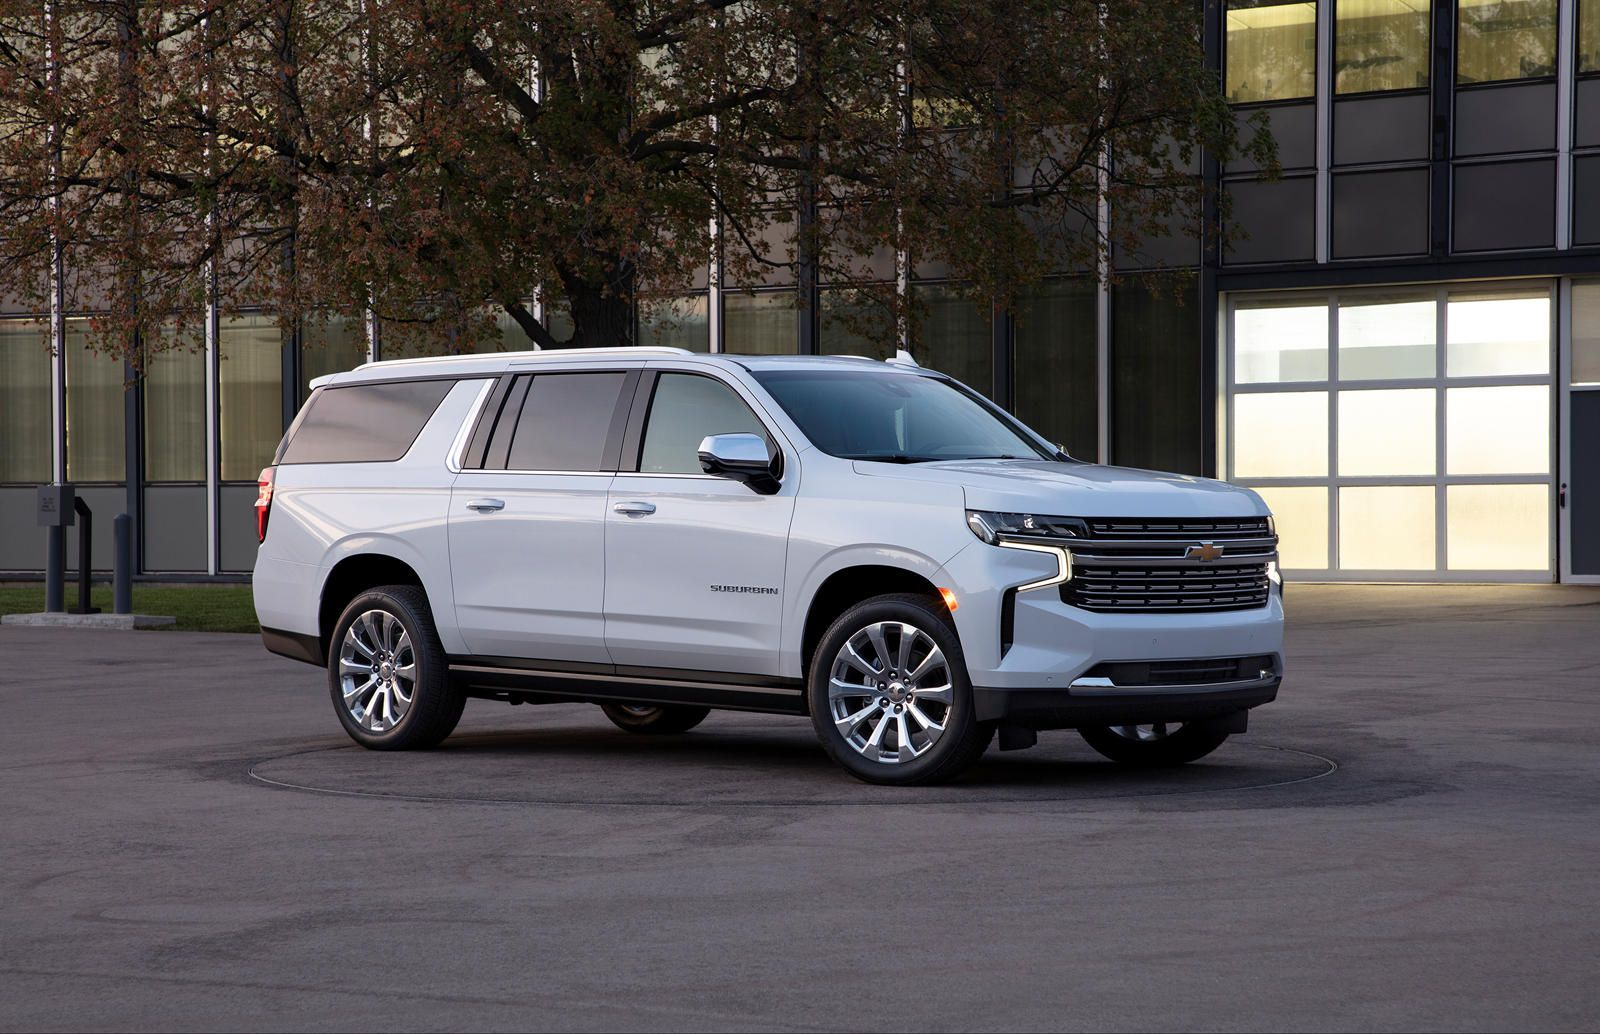 2021 Chevrolet Suburban First Look Review Bigger And Better Than Ever An All American Suv At Its Finest Chevrolet Suburban Chevy Suburban Chevrolet Tahoe